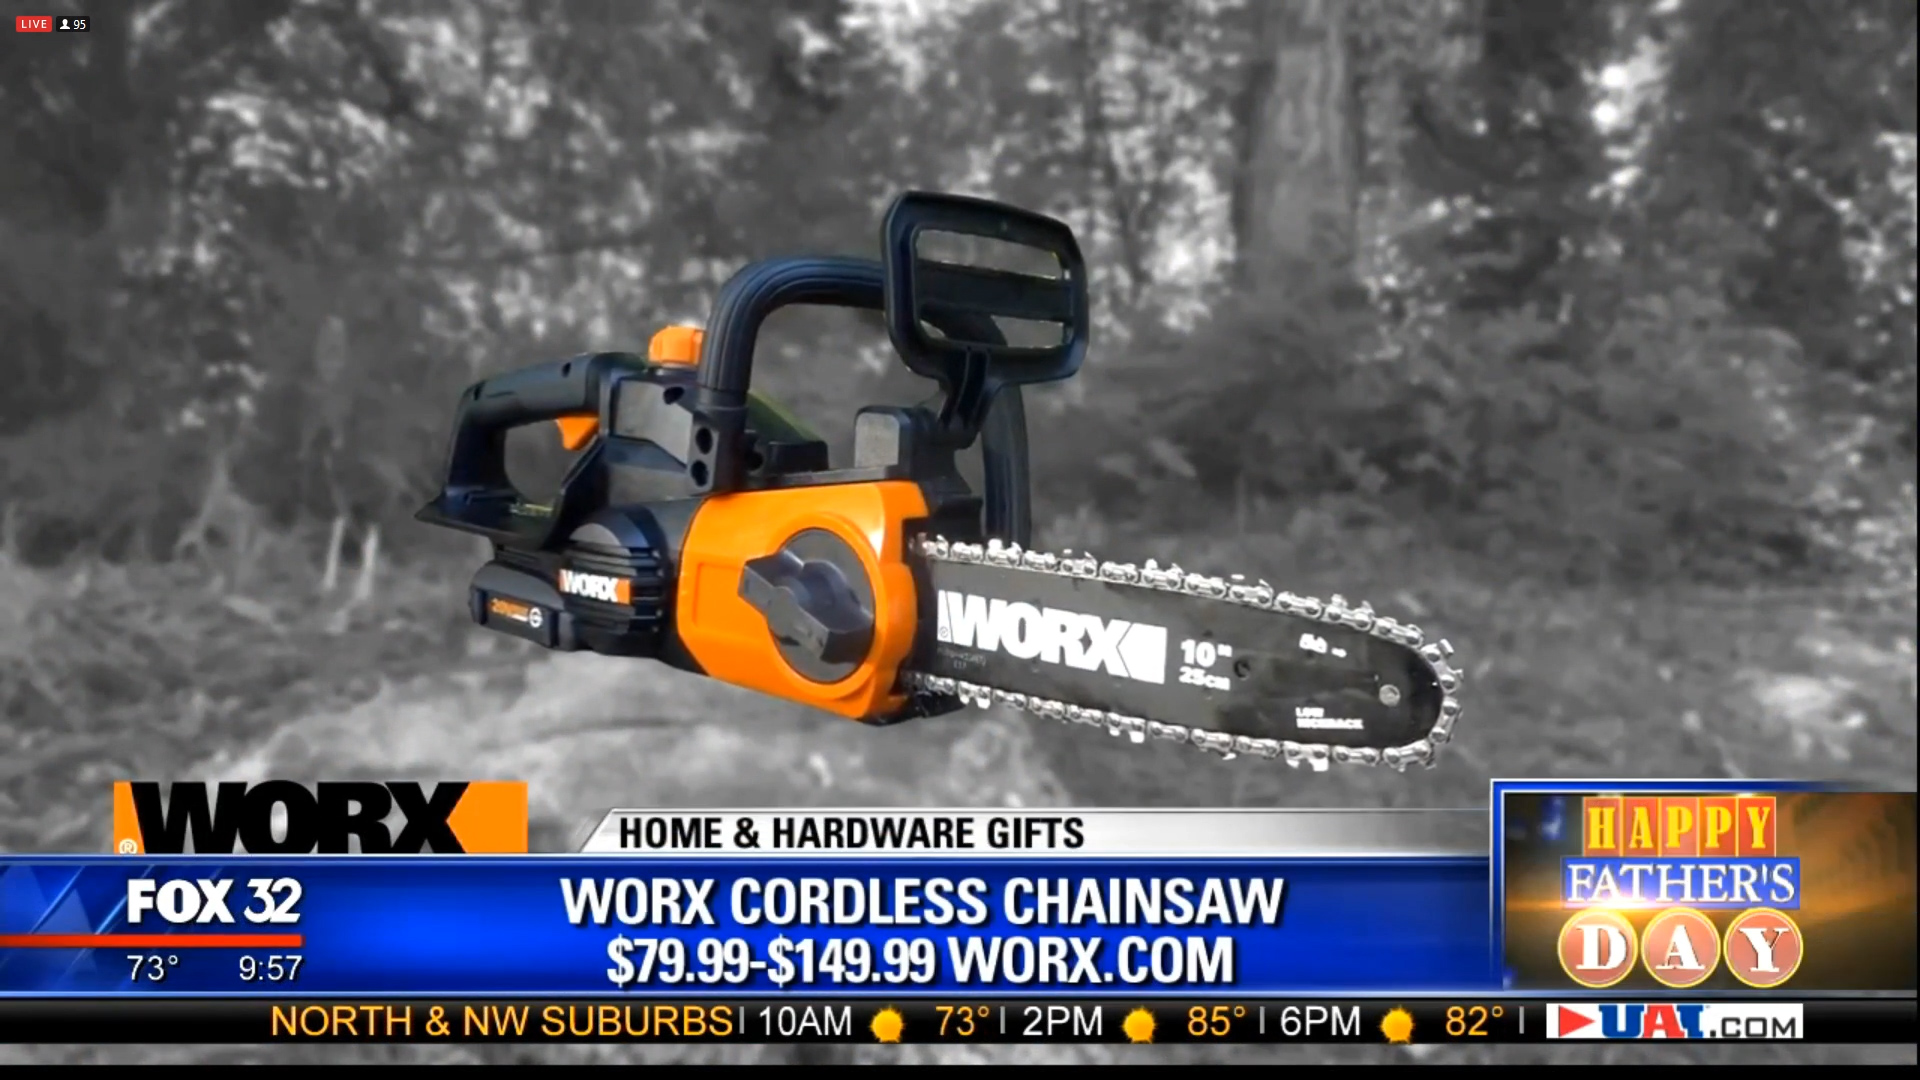 WORX CORDLESS CHAINSAW – POLESAW - $79.99 to $149.99Shop Now